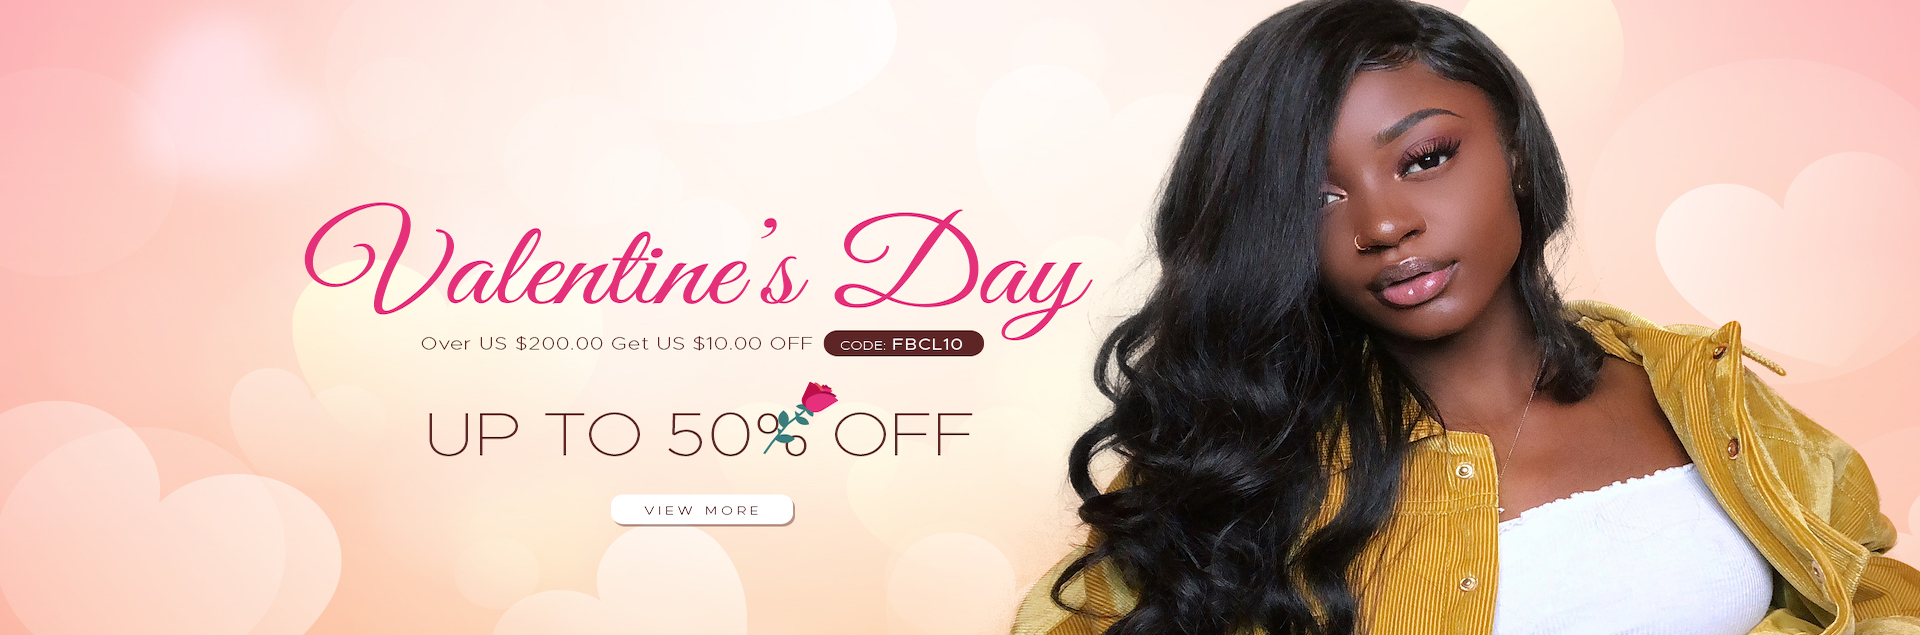 Spicyhair Valentine's Day Hair Sale!